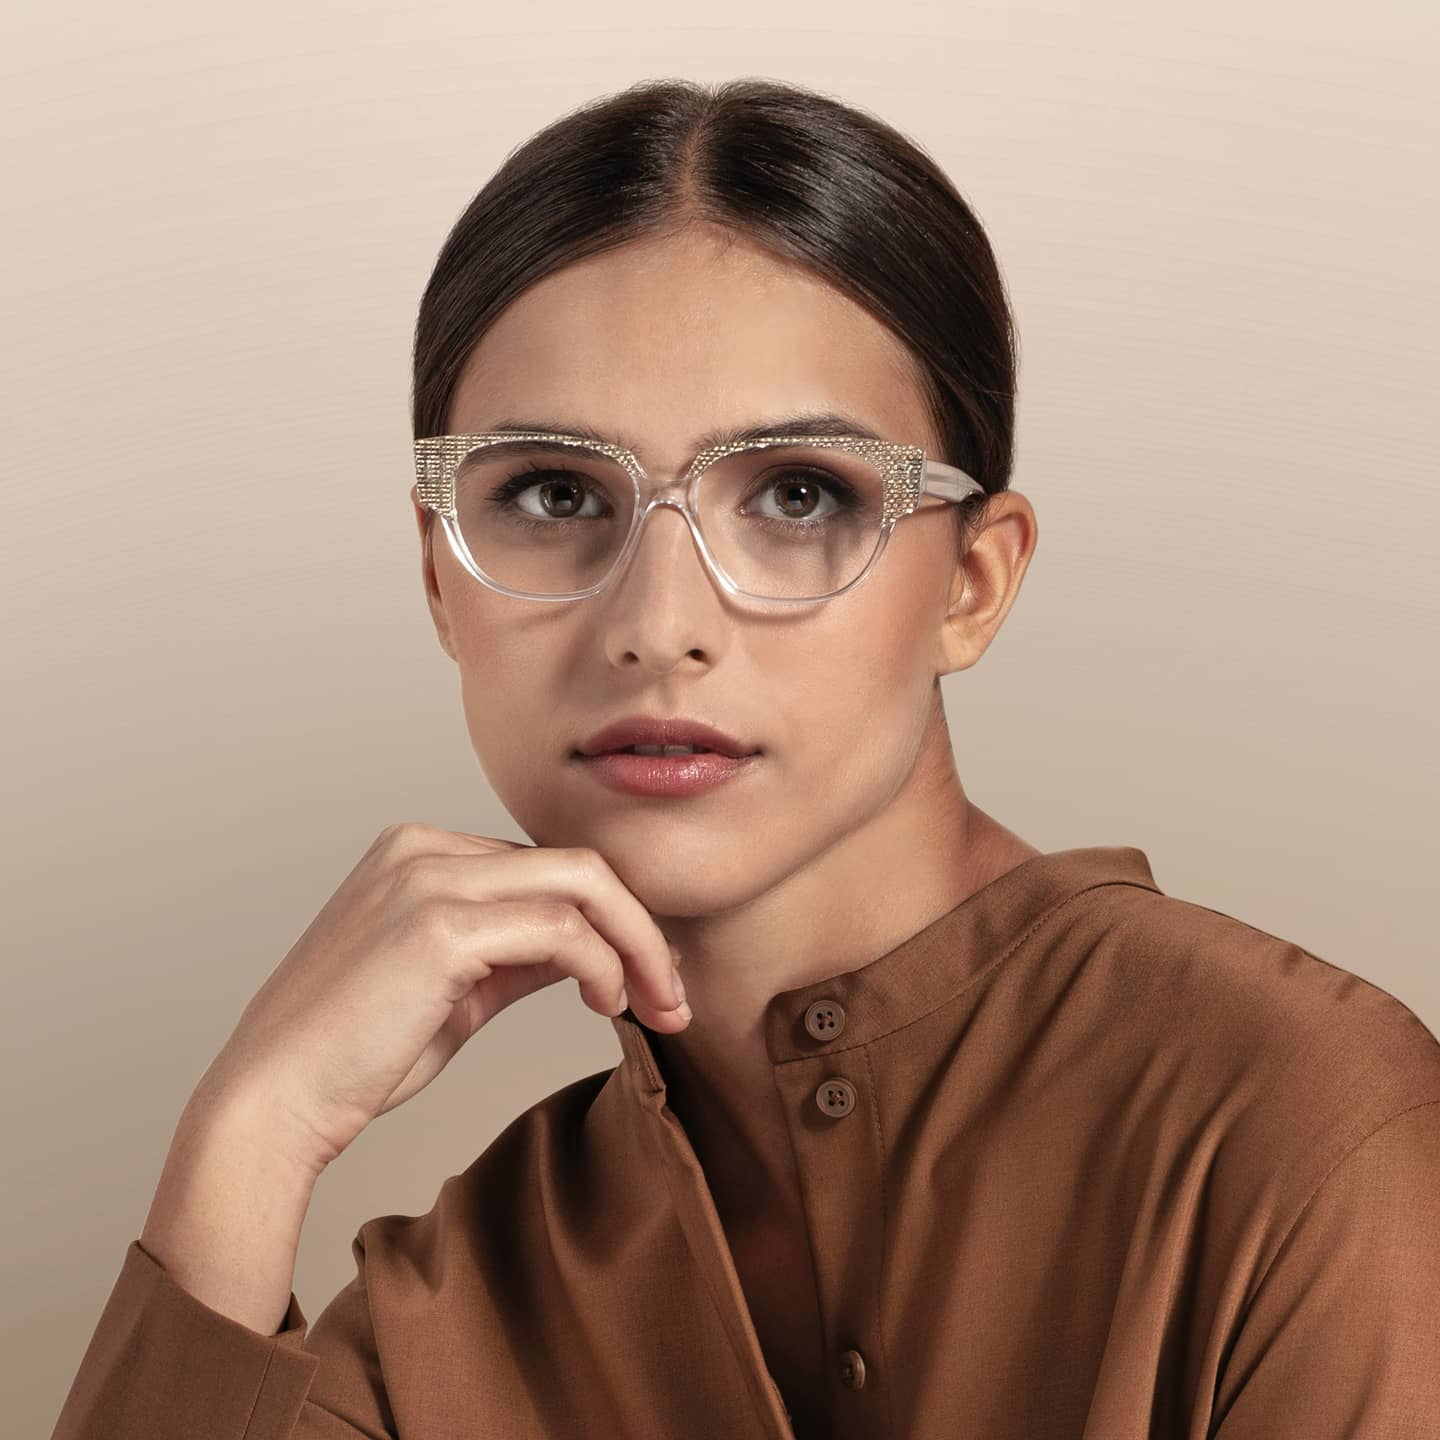 lafont woman eyeglasses brown feb 18 2021